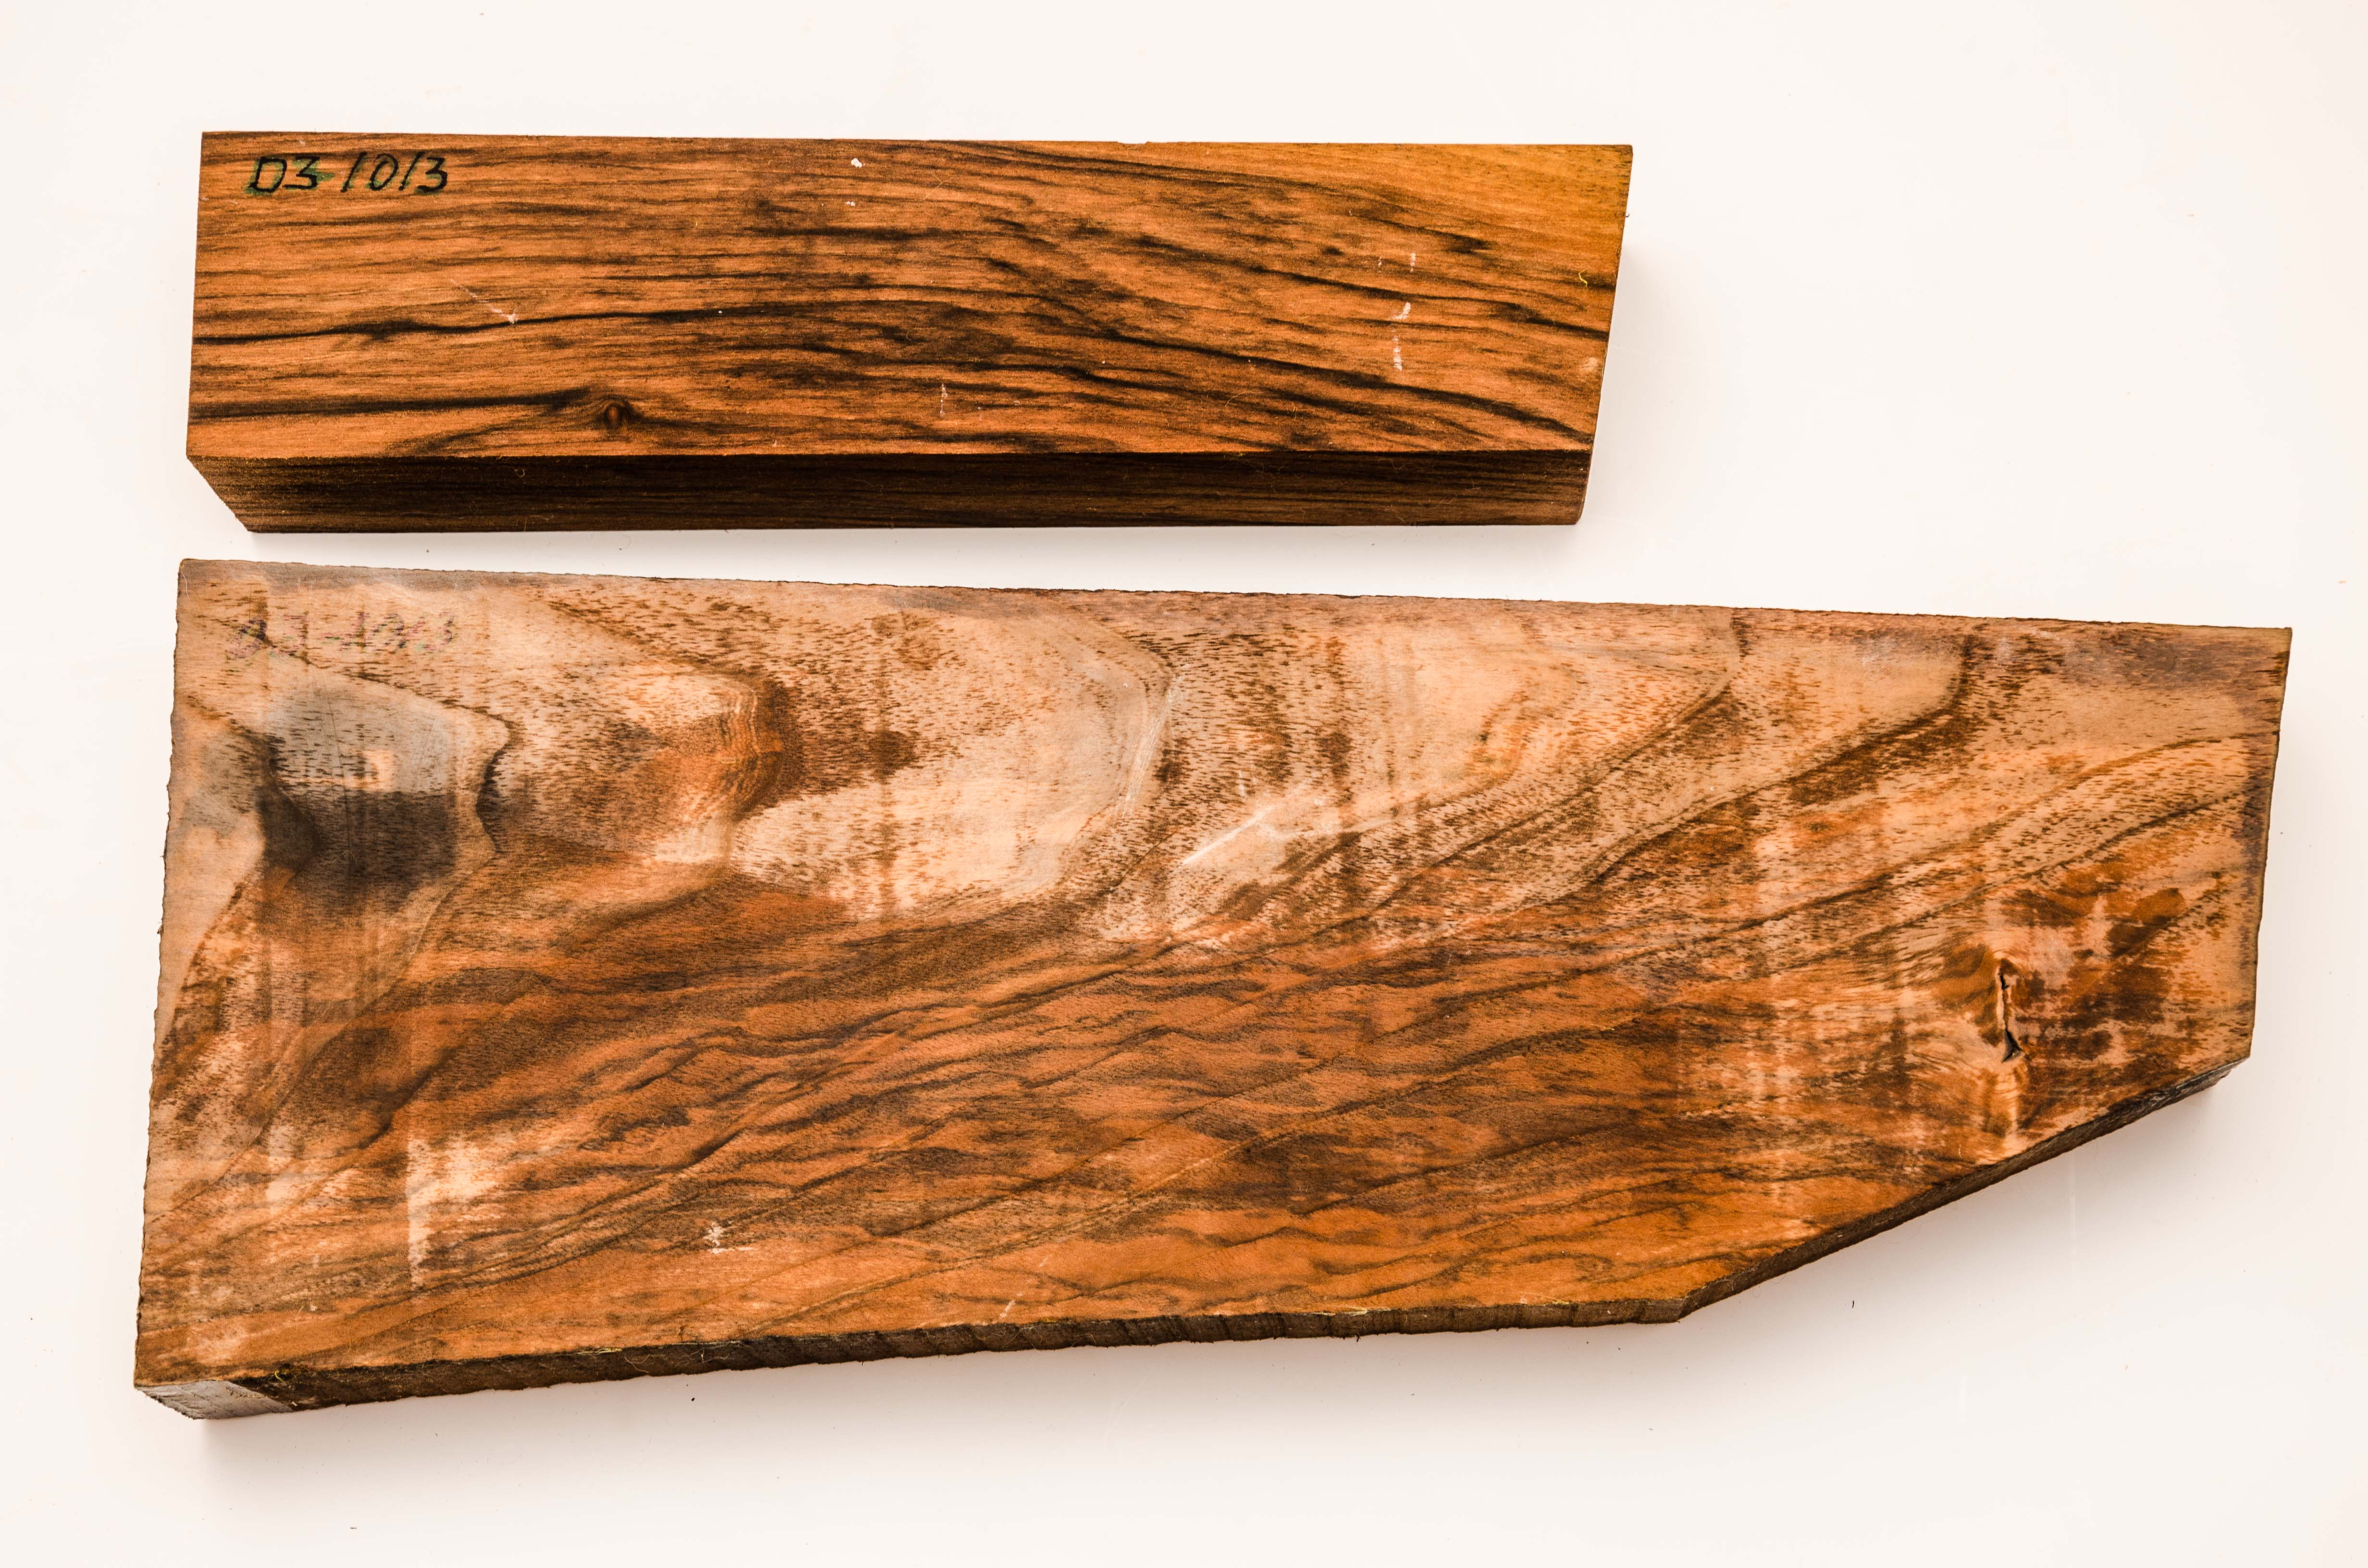 walnut_stock_blanks_for_guns_and_rifles-0302